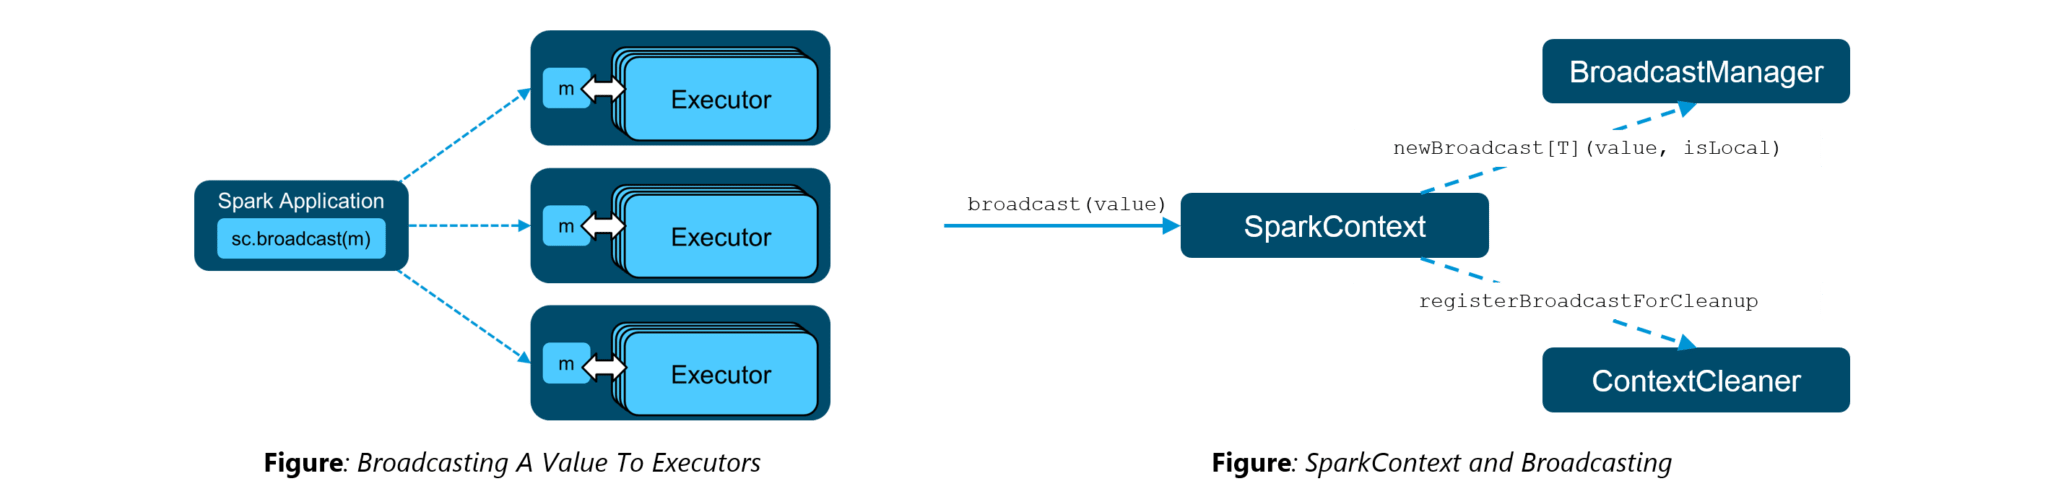 Broadcast Variables - Spark Interview Questions - Edureka